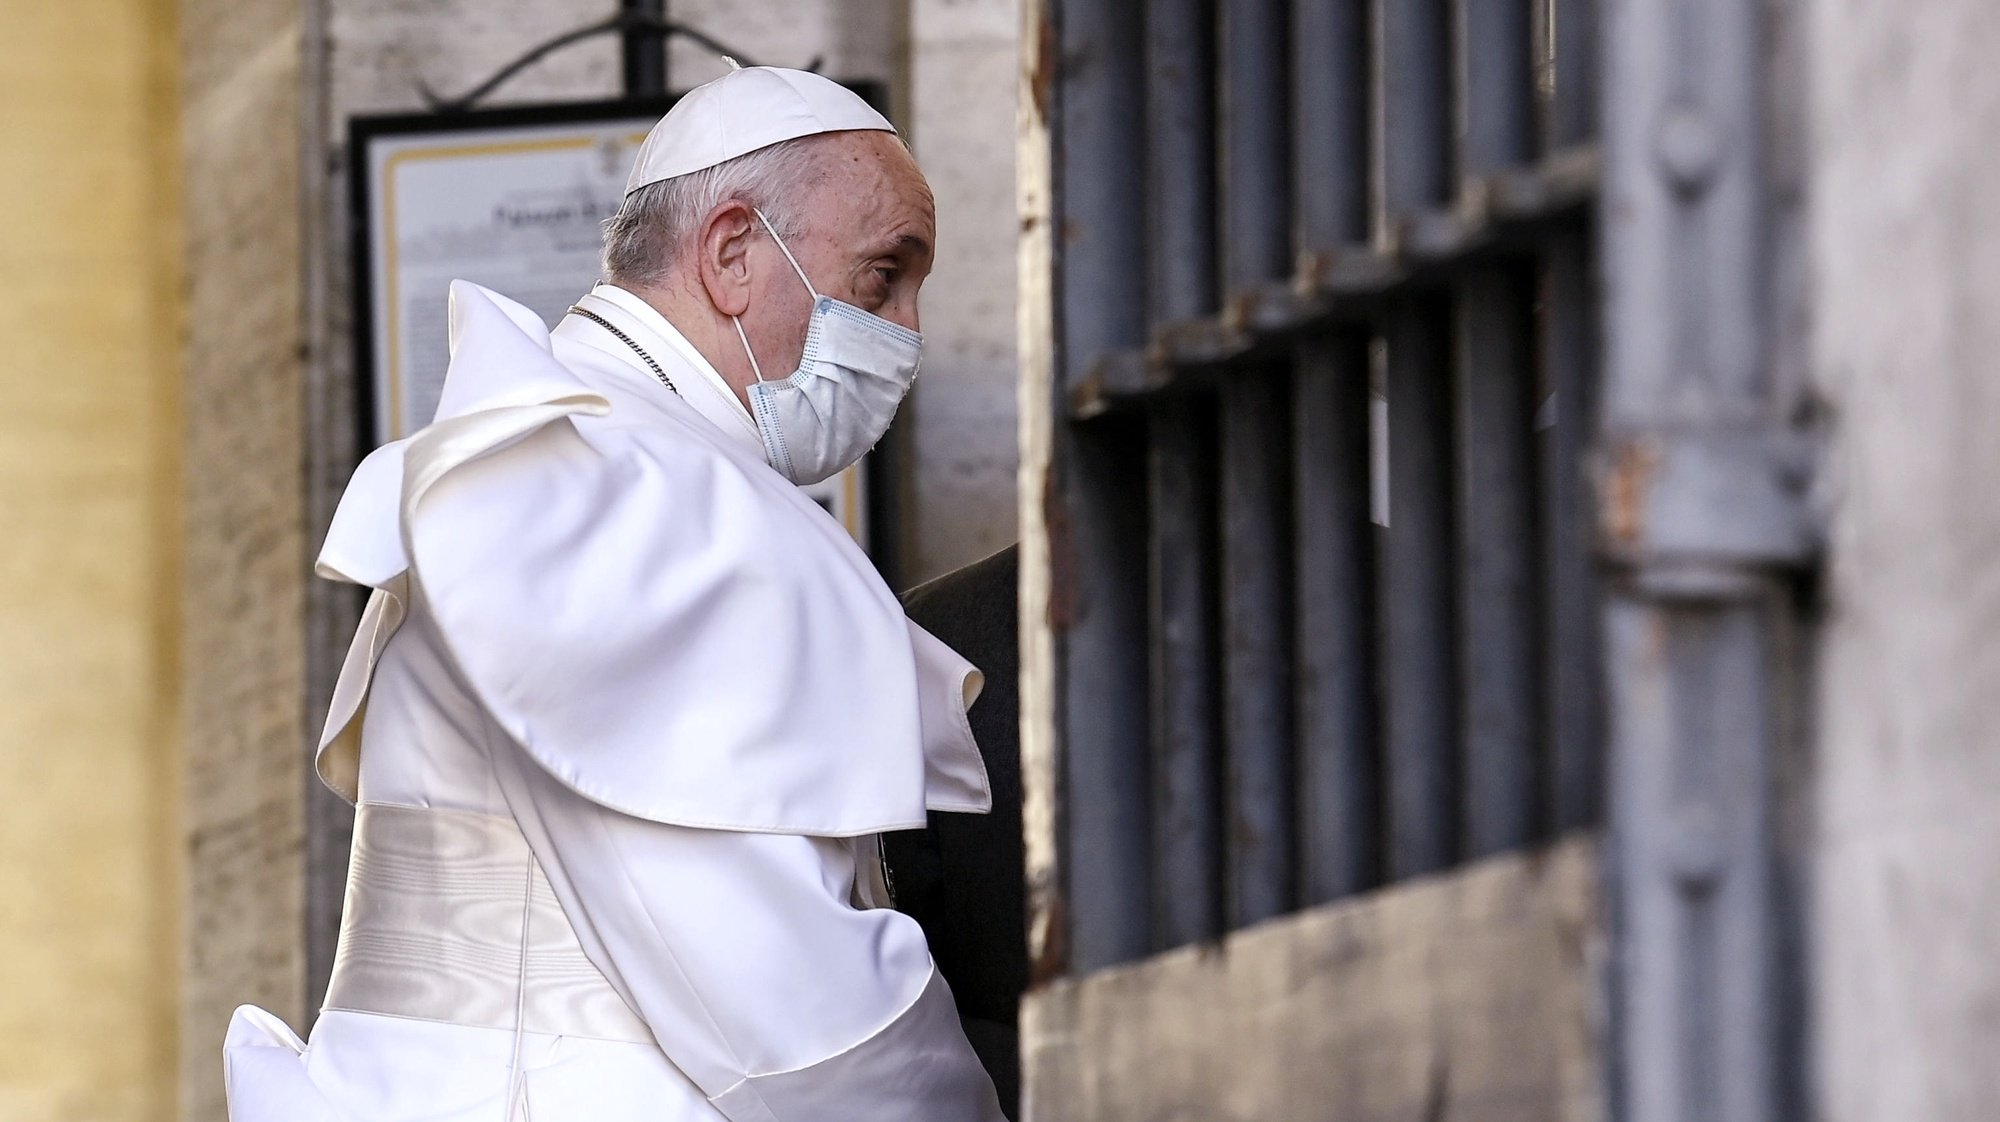 epa09215174 Pope Francis wears a face mask during his visit to the Vatican Scholas Occurrentes in Trastevere neighborhood in Rome, Italy, 20 May 2021. Scholas Occurrentes is a pontifical foundation that is present on five continents through its educational networks.  EPA/RICCARDO ANTIMIANI